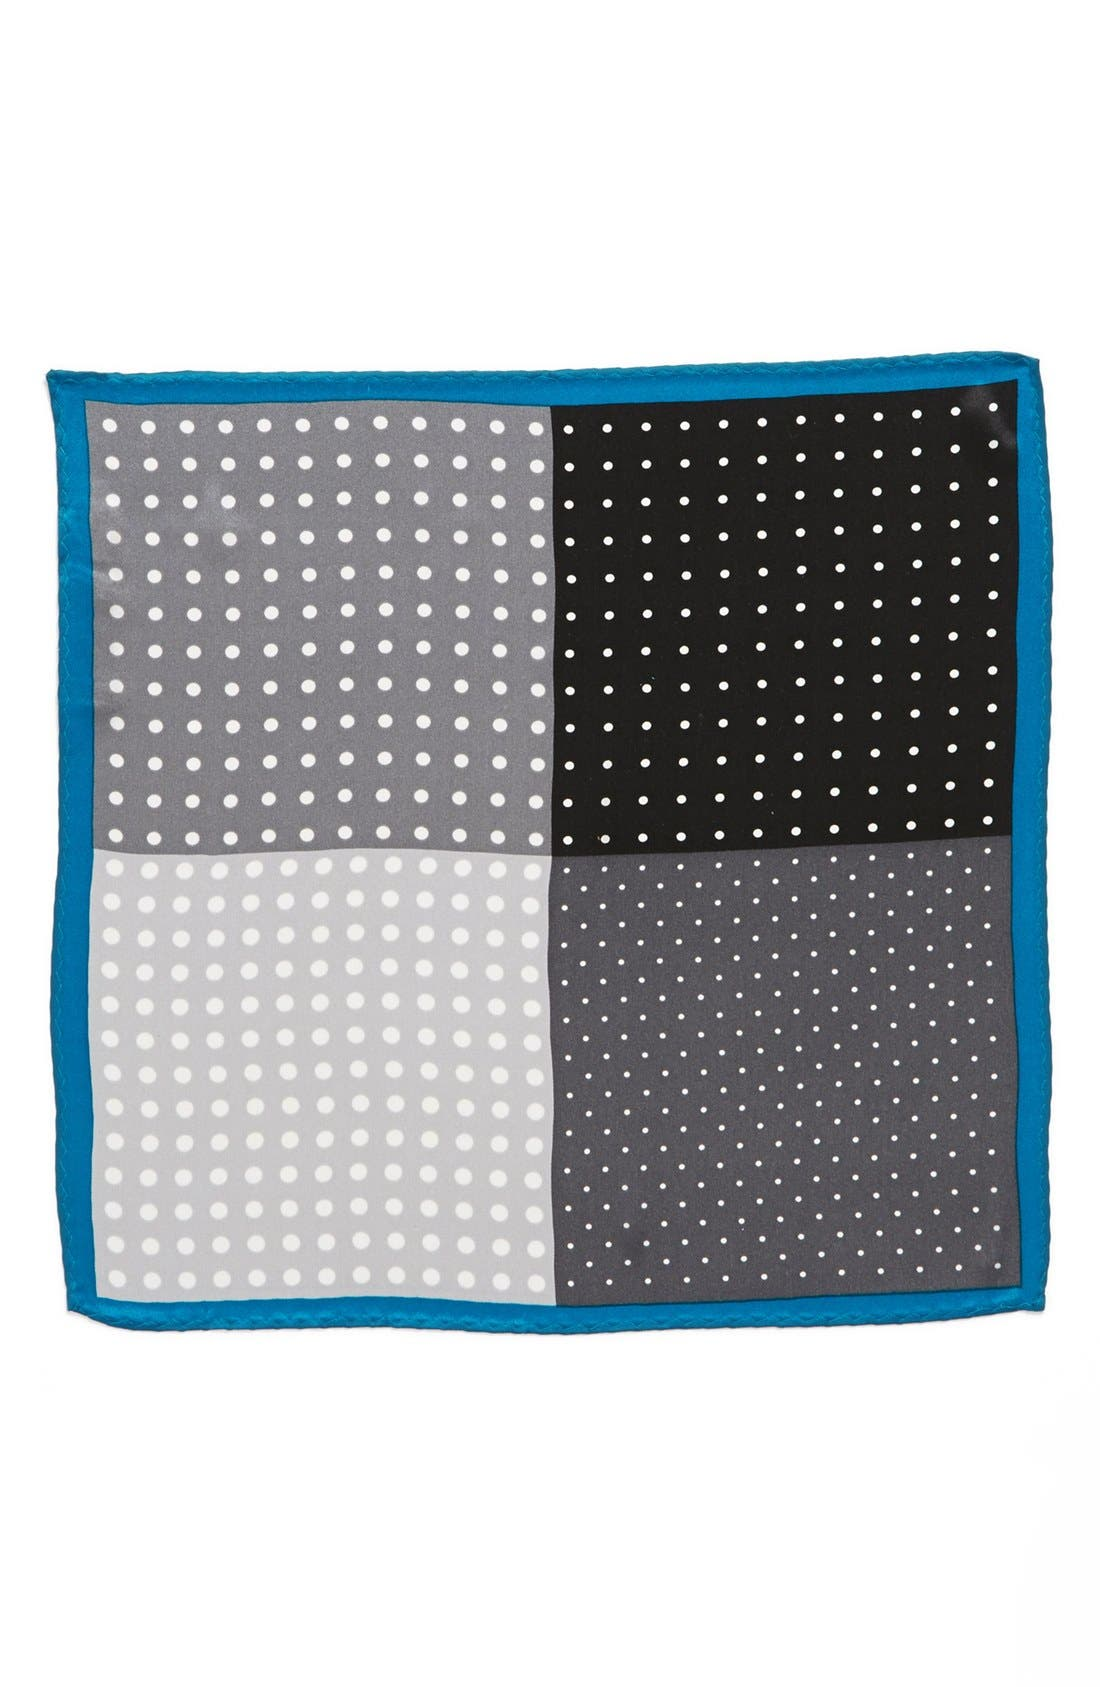 Main Image - Original Penguin 'Amsterdam Dot' Silk Pocket Square